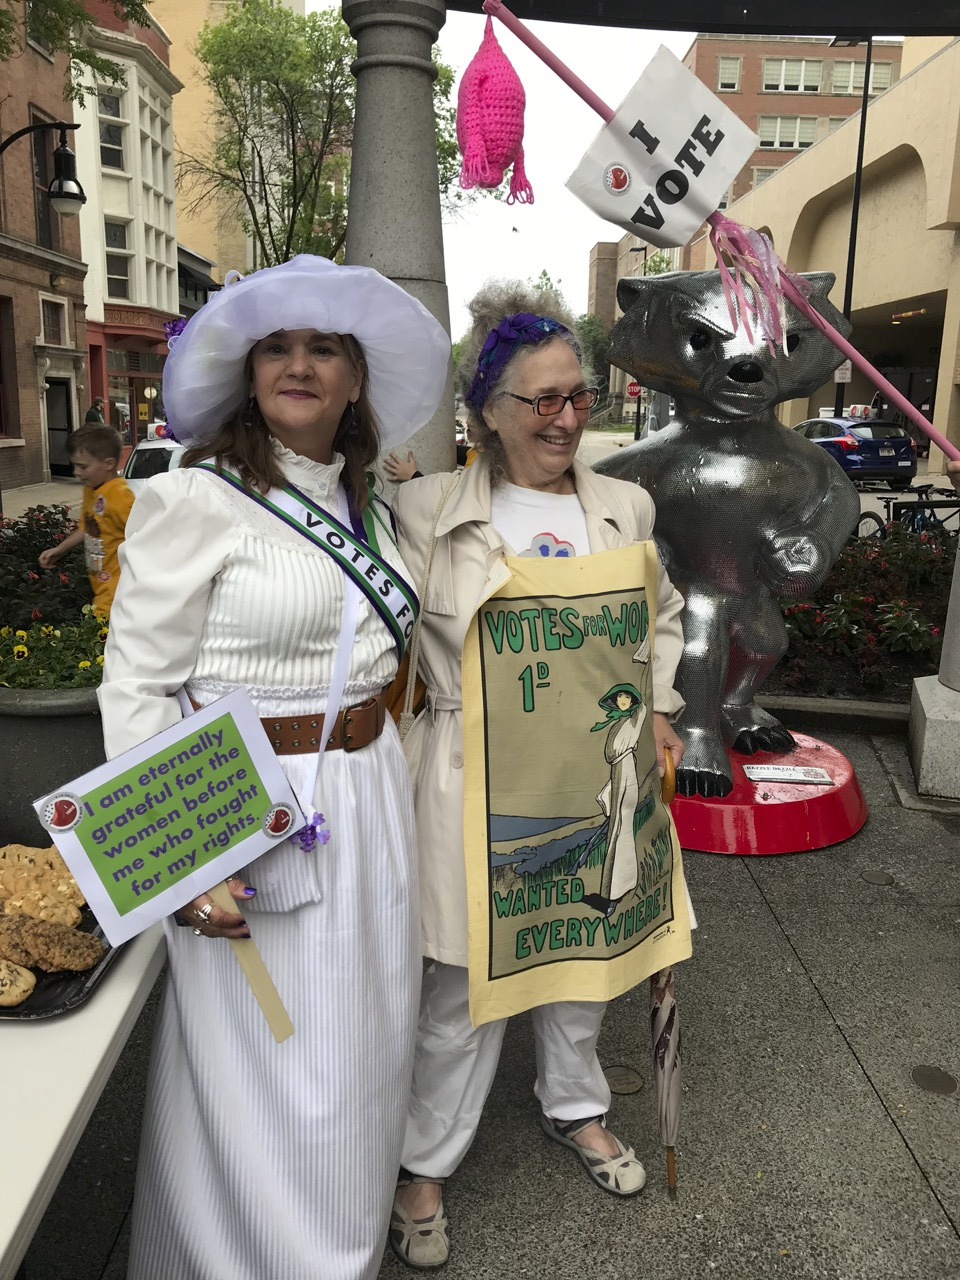 Marchers in full Suffragist mode!